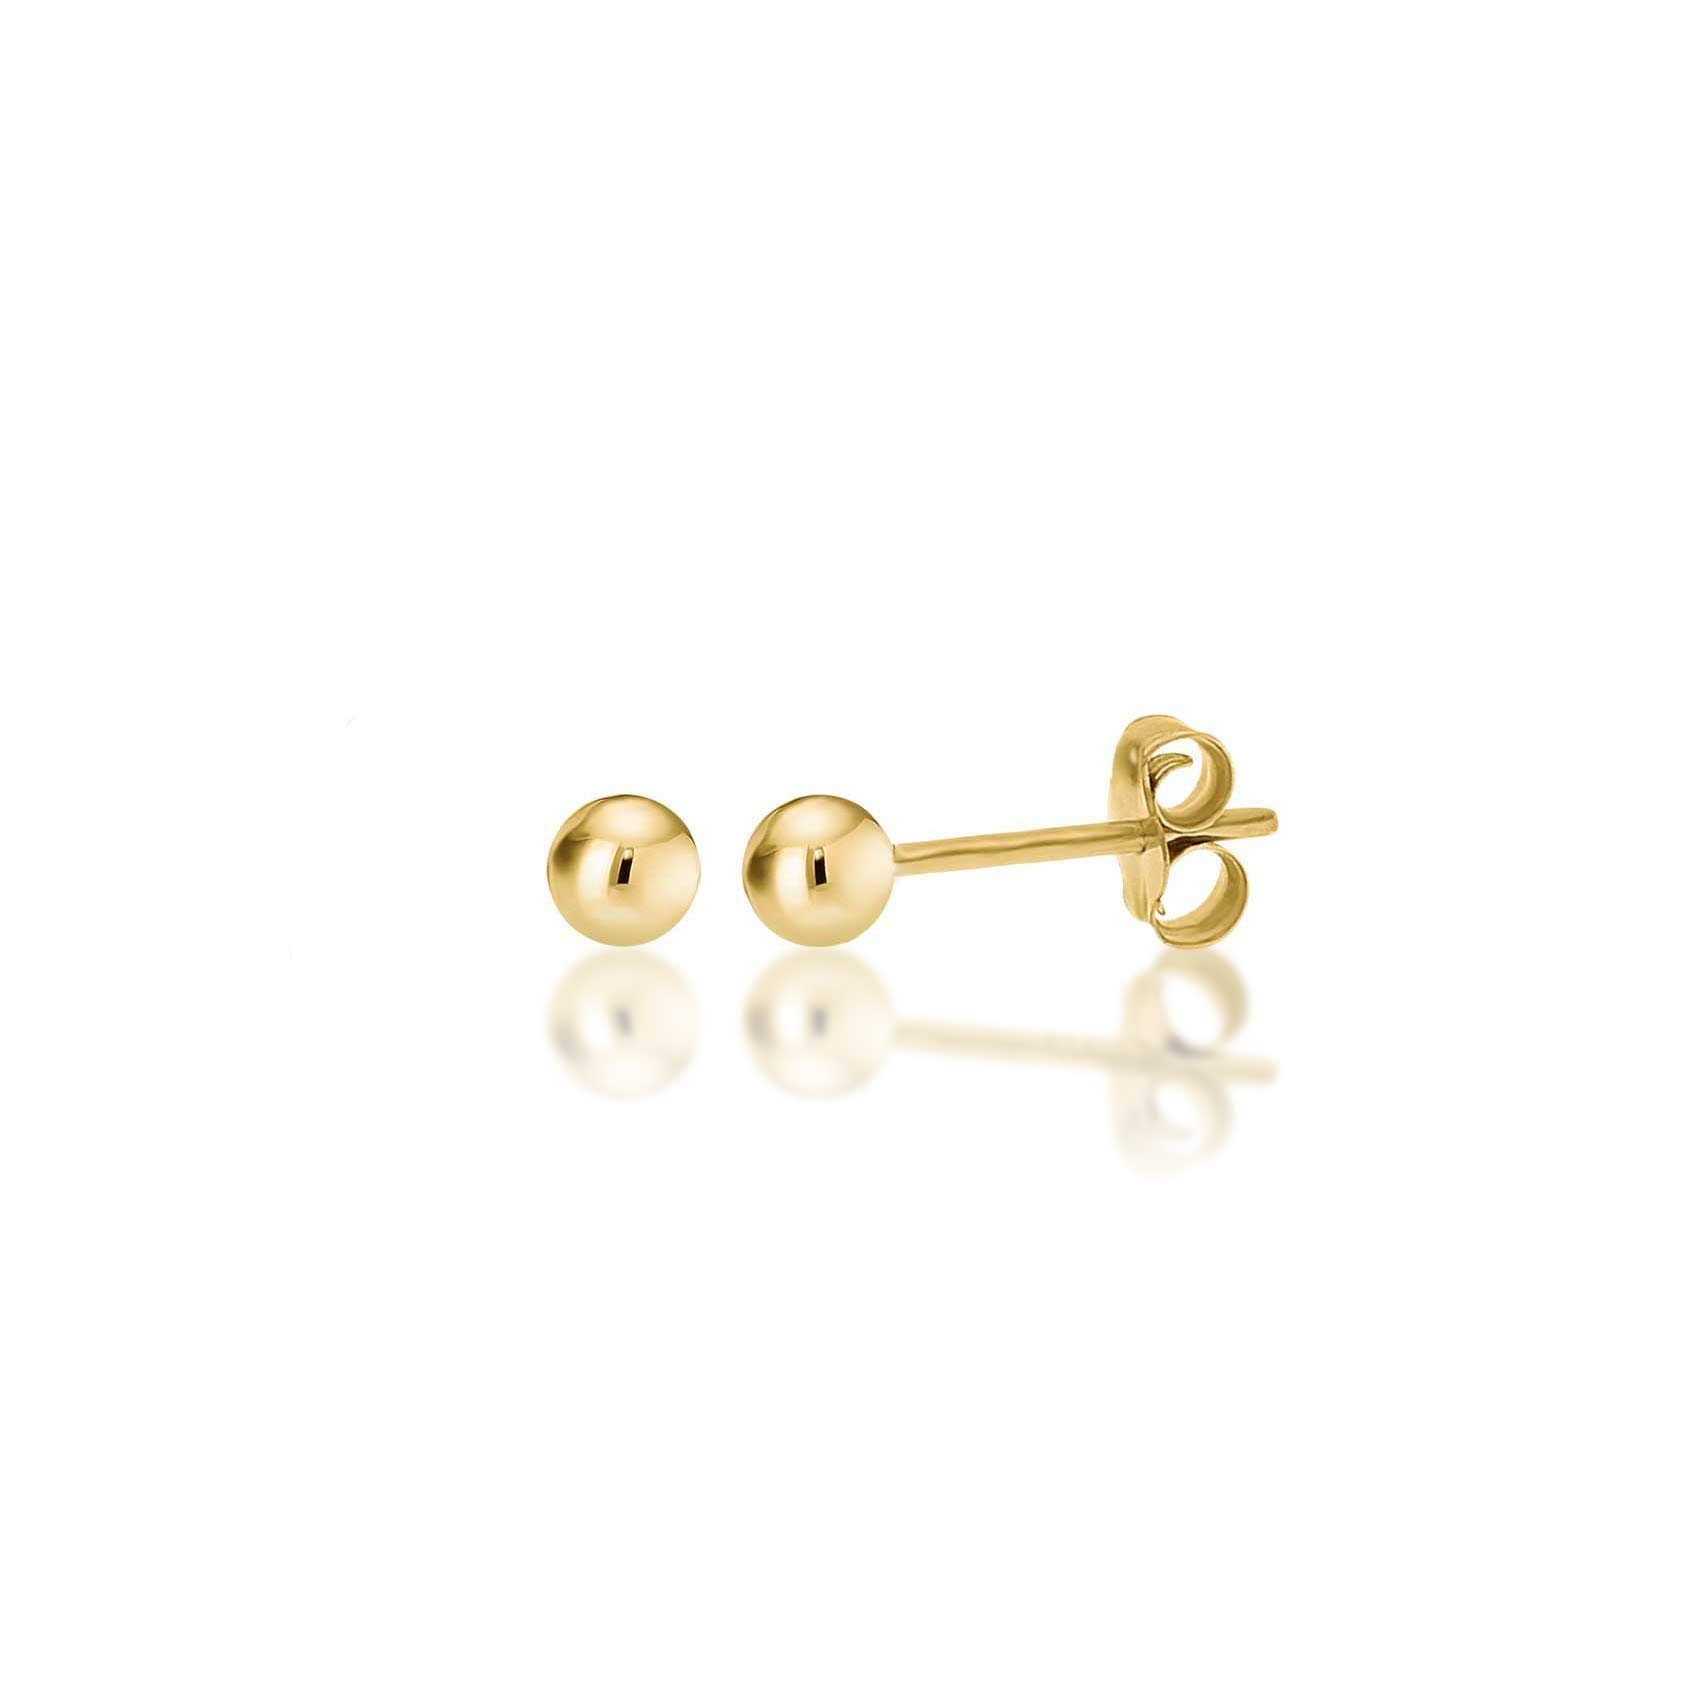 14K Yellow Gold Filled Round Ball Stud Earrings Pushback 3mm